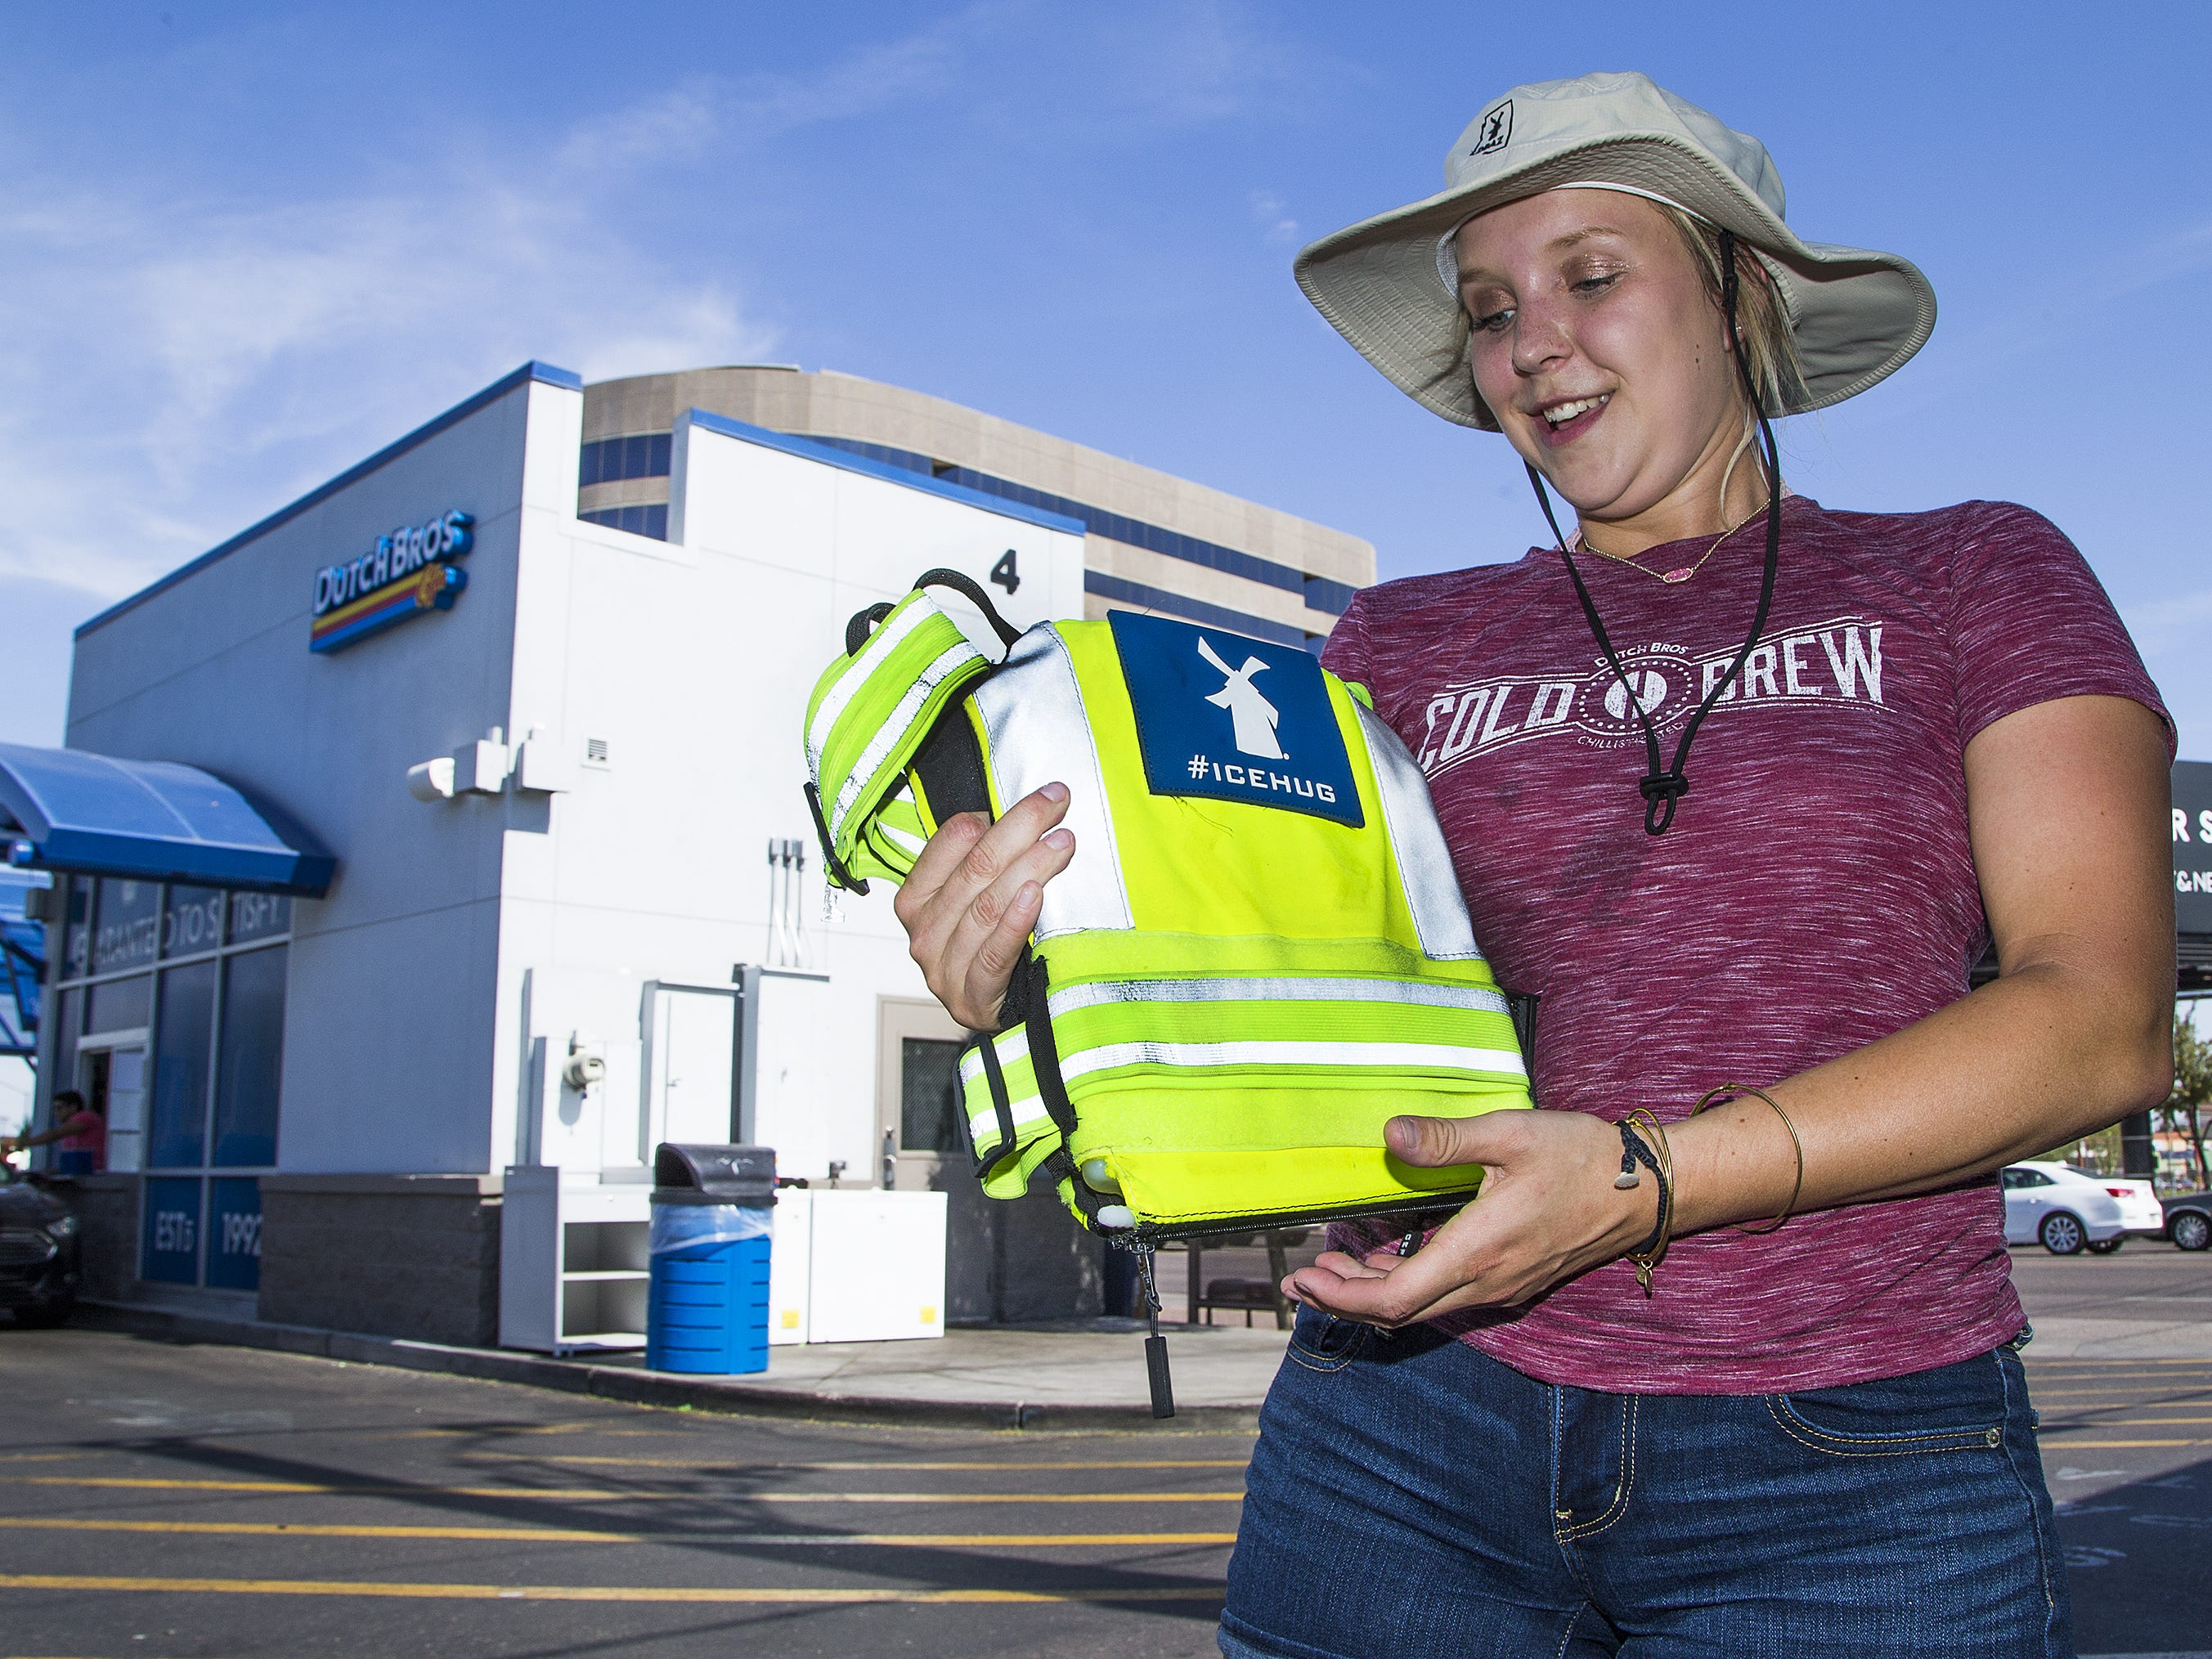 Dutch Bros. manager Allie Wilson shows off the Ice Hugs cooling vest at the Camelback Road and Central Avenue store in Phoenix on July 25, 2018. The company has started using the vests to cool down their workers who take orders outside in the blazing heat in Phoenix.